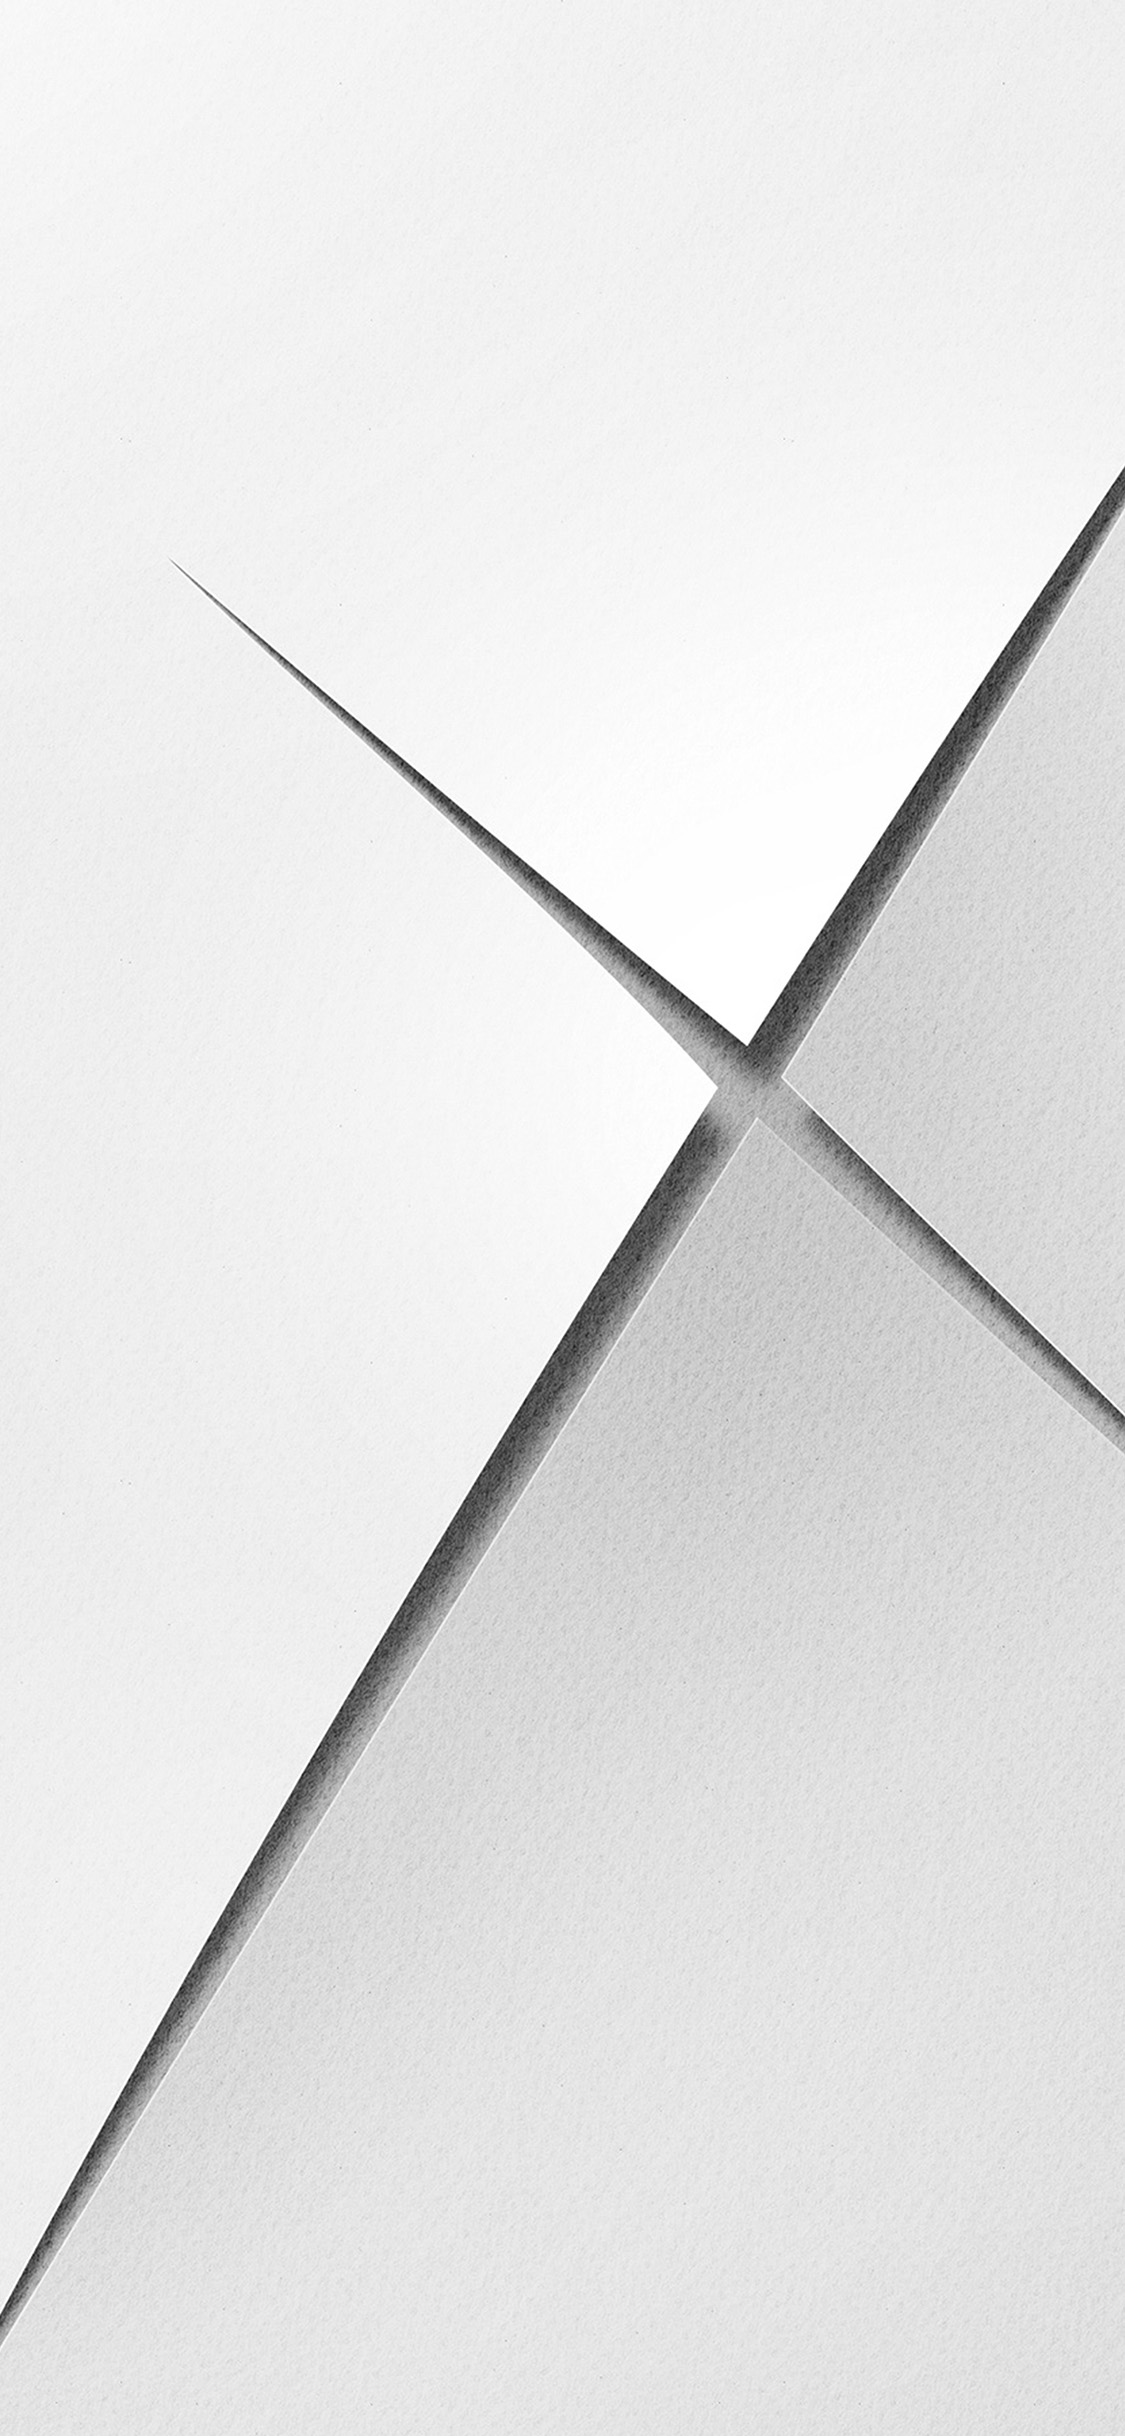 iPhonexpapers.com-Apple-iPhone-wallpaper-bh79-white-cut-blank-knife-art